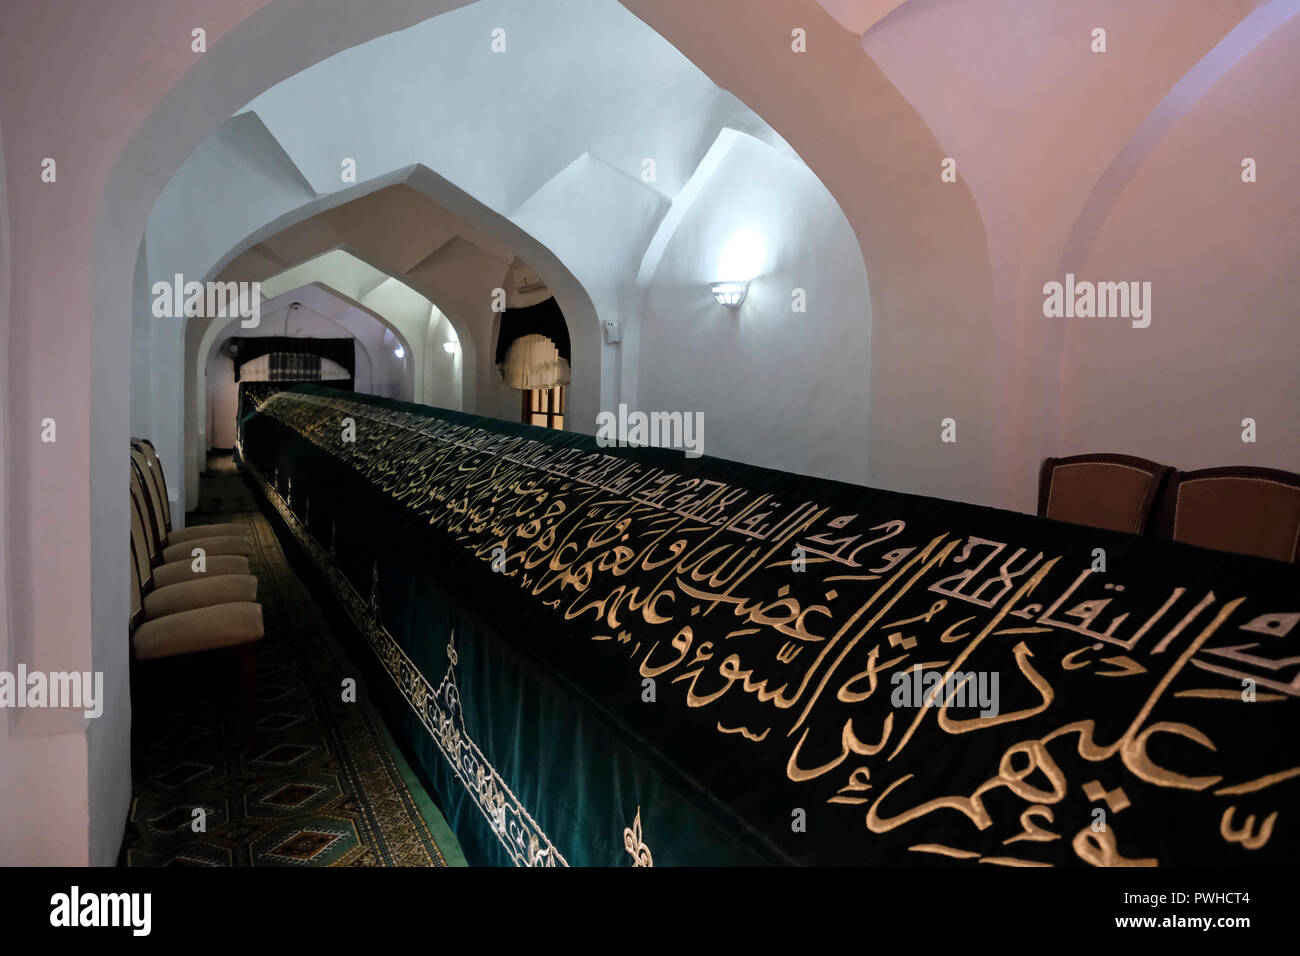 View of the long structure that holds an 18m long sarcophagus, reputedly holding the remains of the Old Testament prophet Daniel, revered by Muslims, Jews and Christians alike in the city of Samarkand alternatively Samarqand of the Timurid dynasty in Uzbekistan - Stock Image